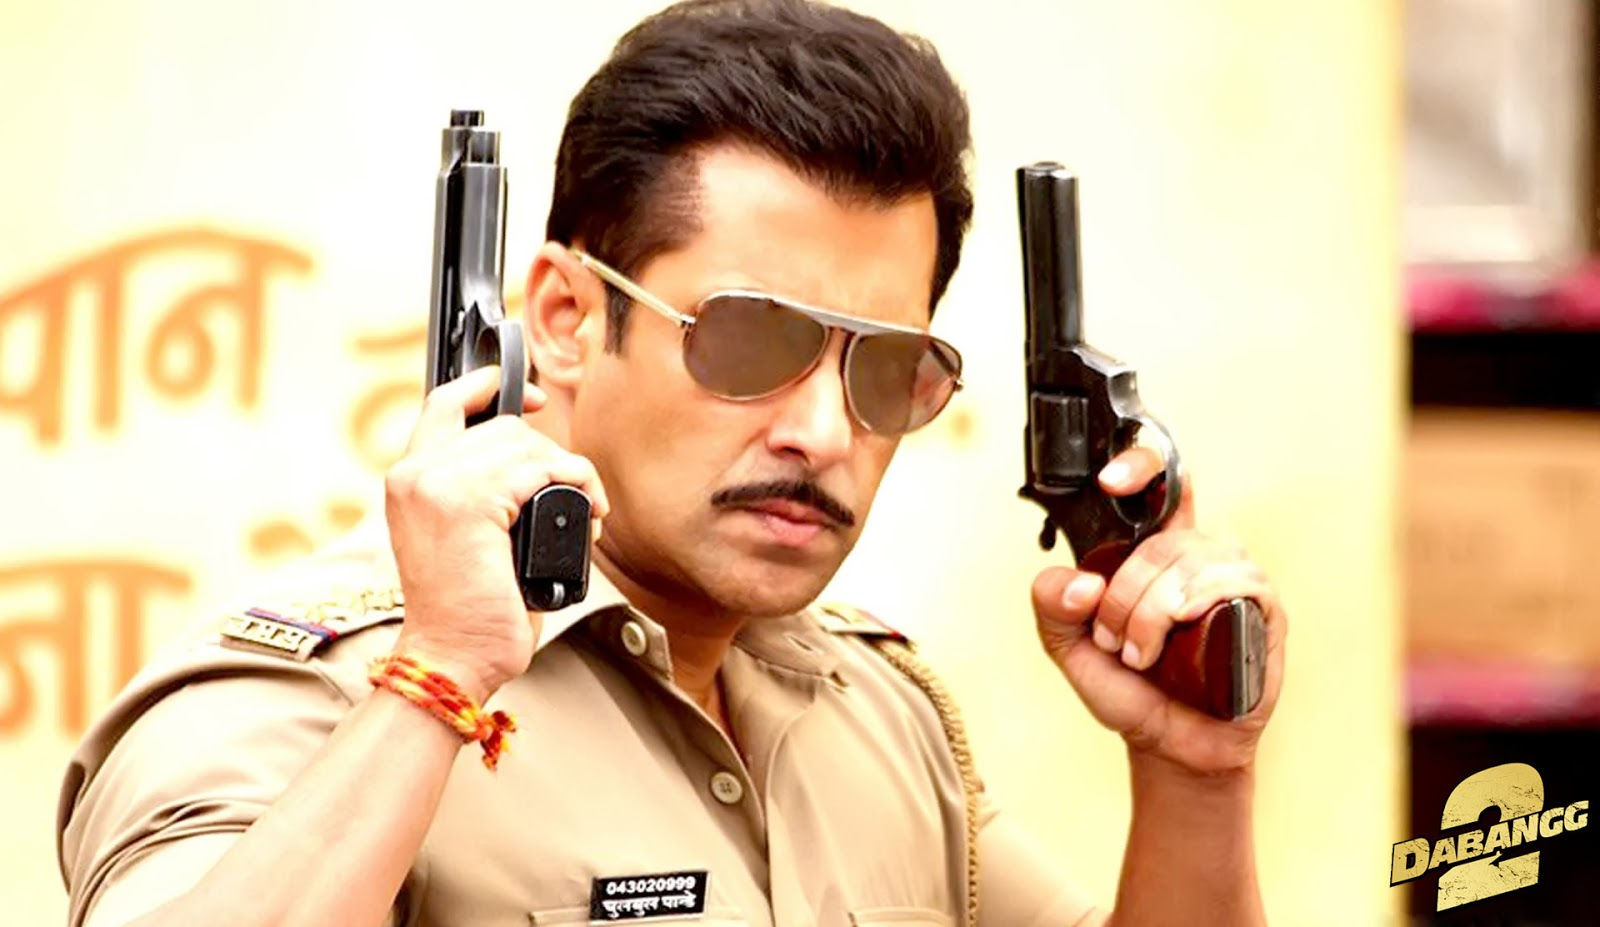 Dabangg Salman Khan High Quality Wallpaper